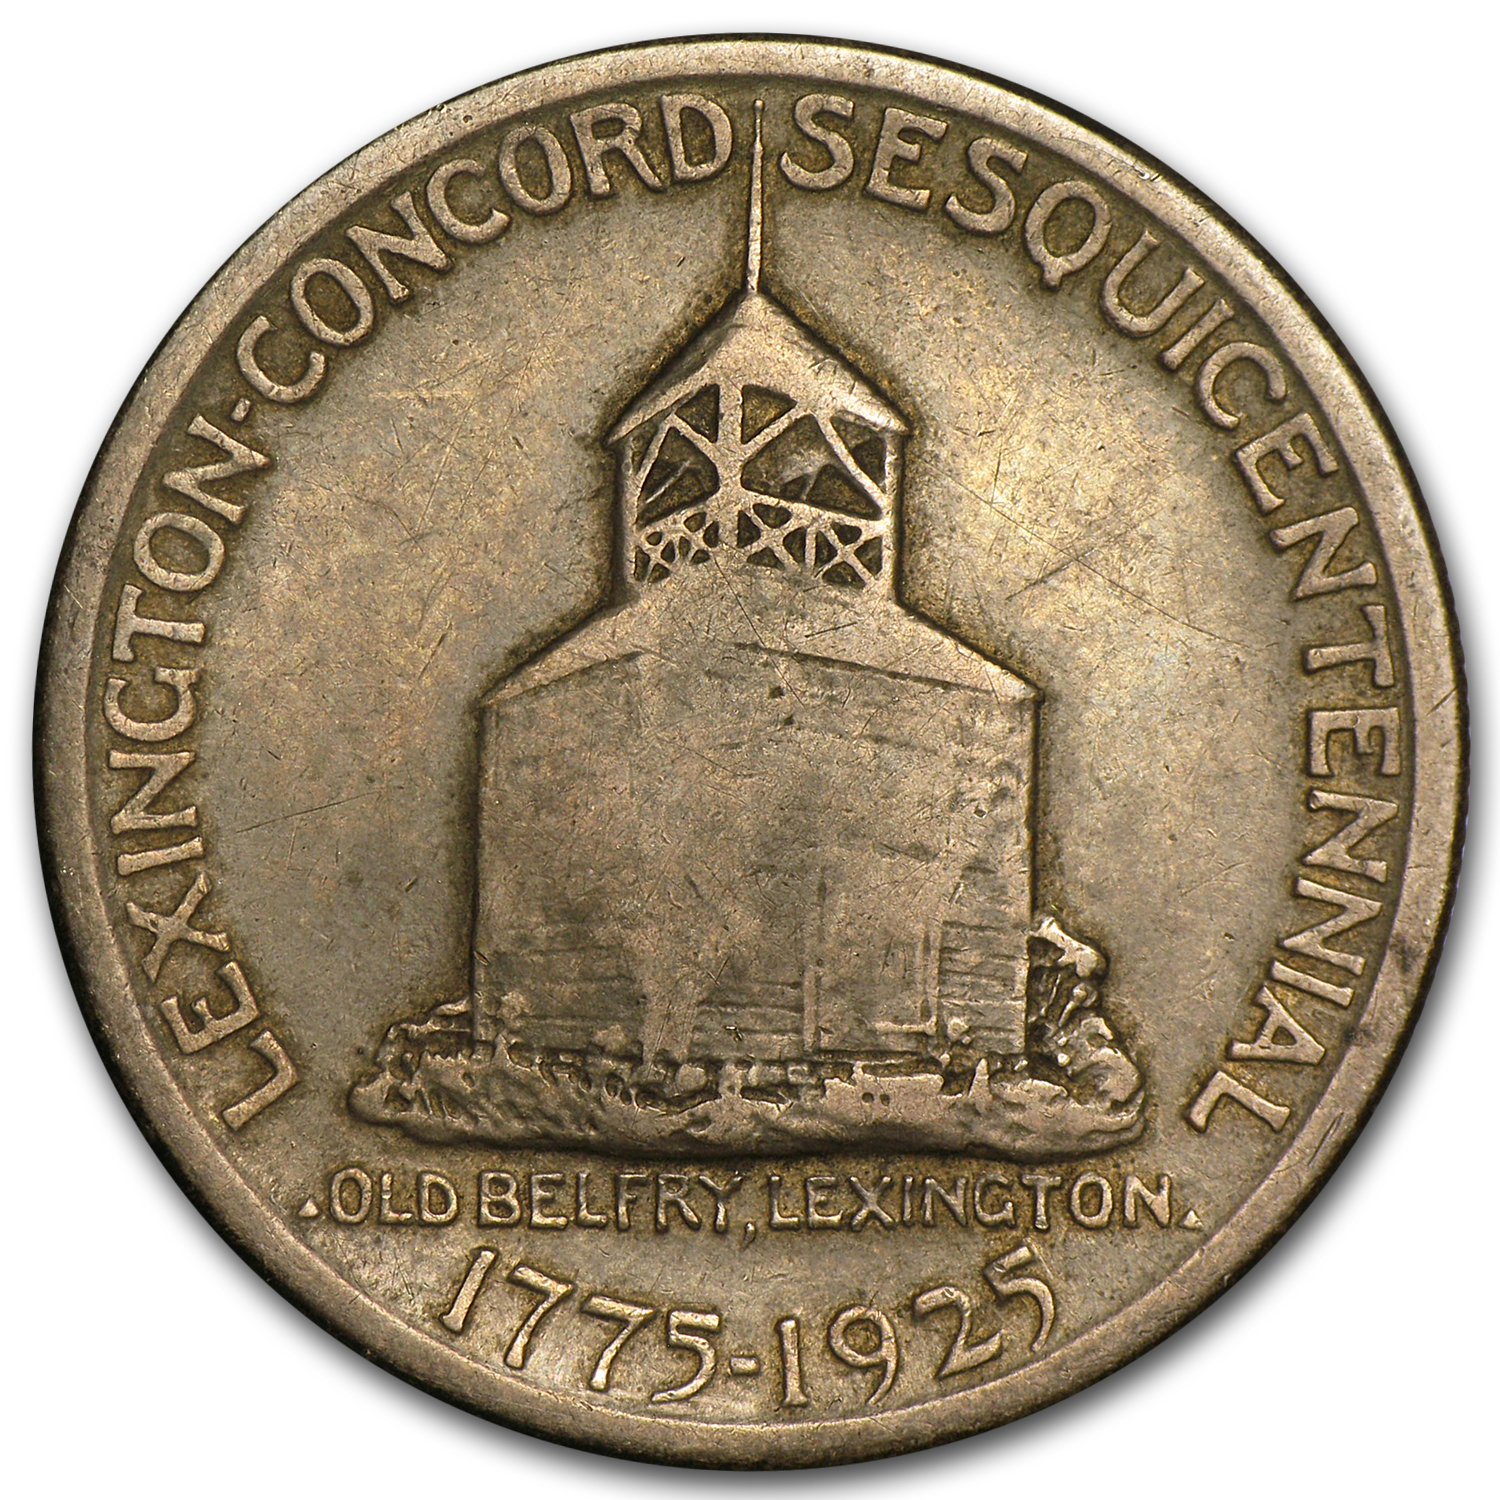 1925 Lexington-Concord Sesquicentennial - Very Fine